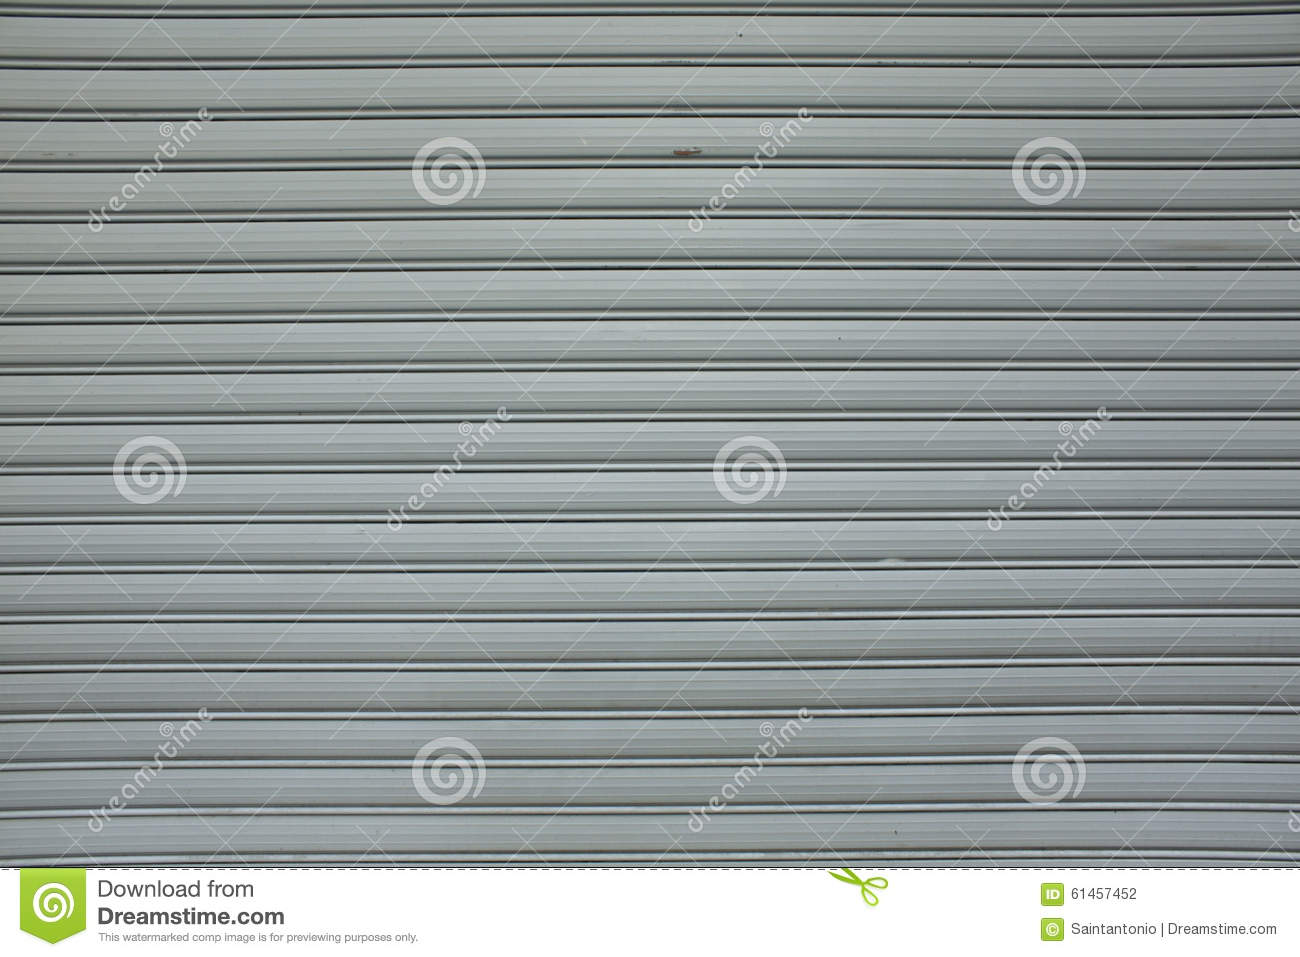 Corrugated Metal Door Painted Surface Texture Background. Grunge Textures  Backgrounds. Old Cracked Wall Background